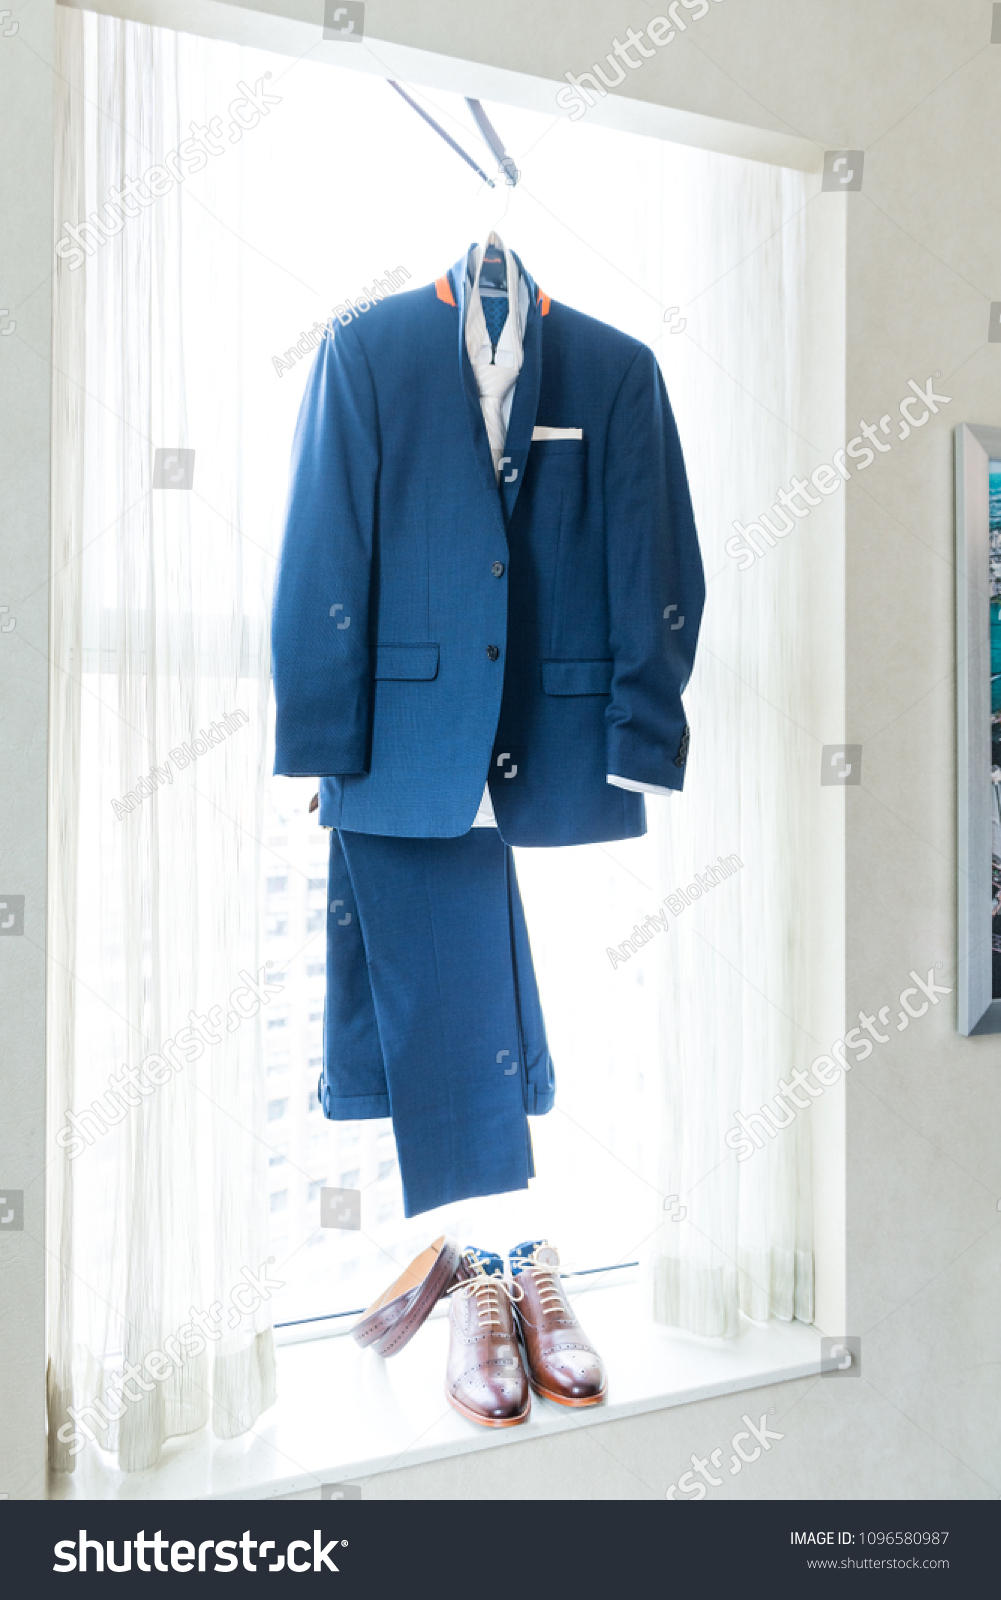 Mens New Marine Navy Blue Suit Stock Photo Edit Now 1096580987